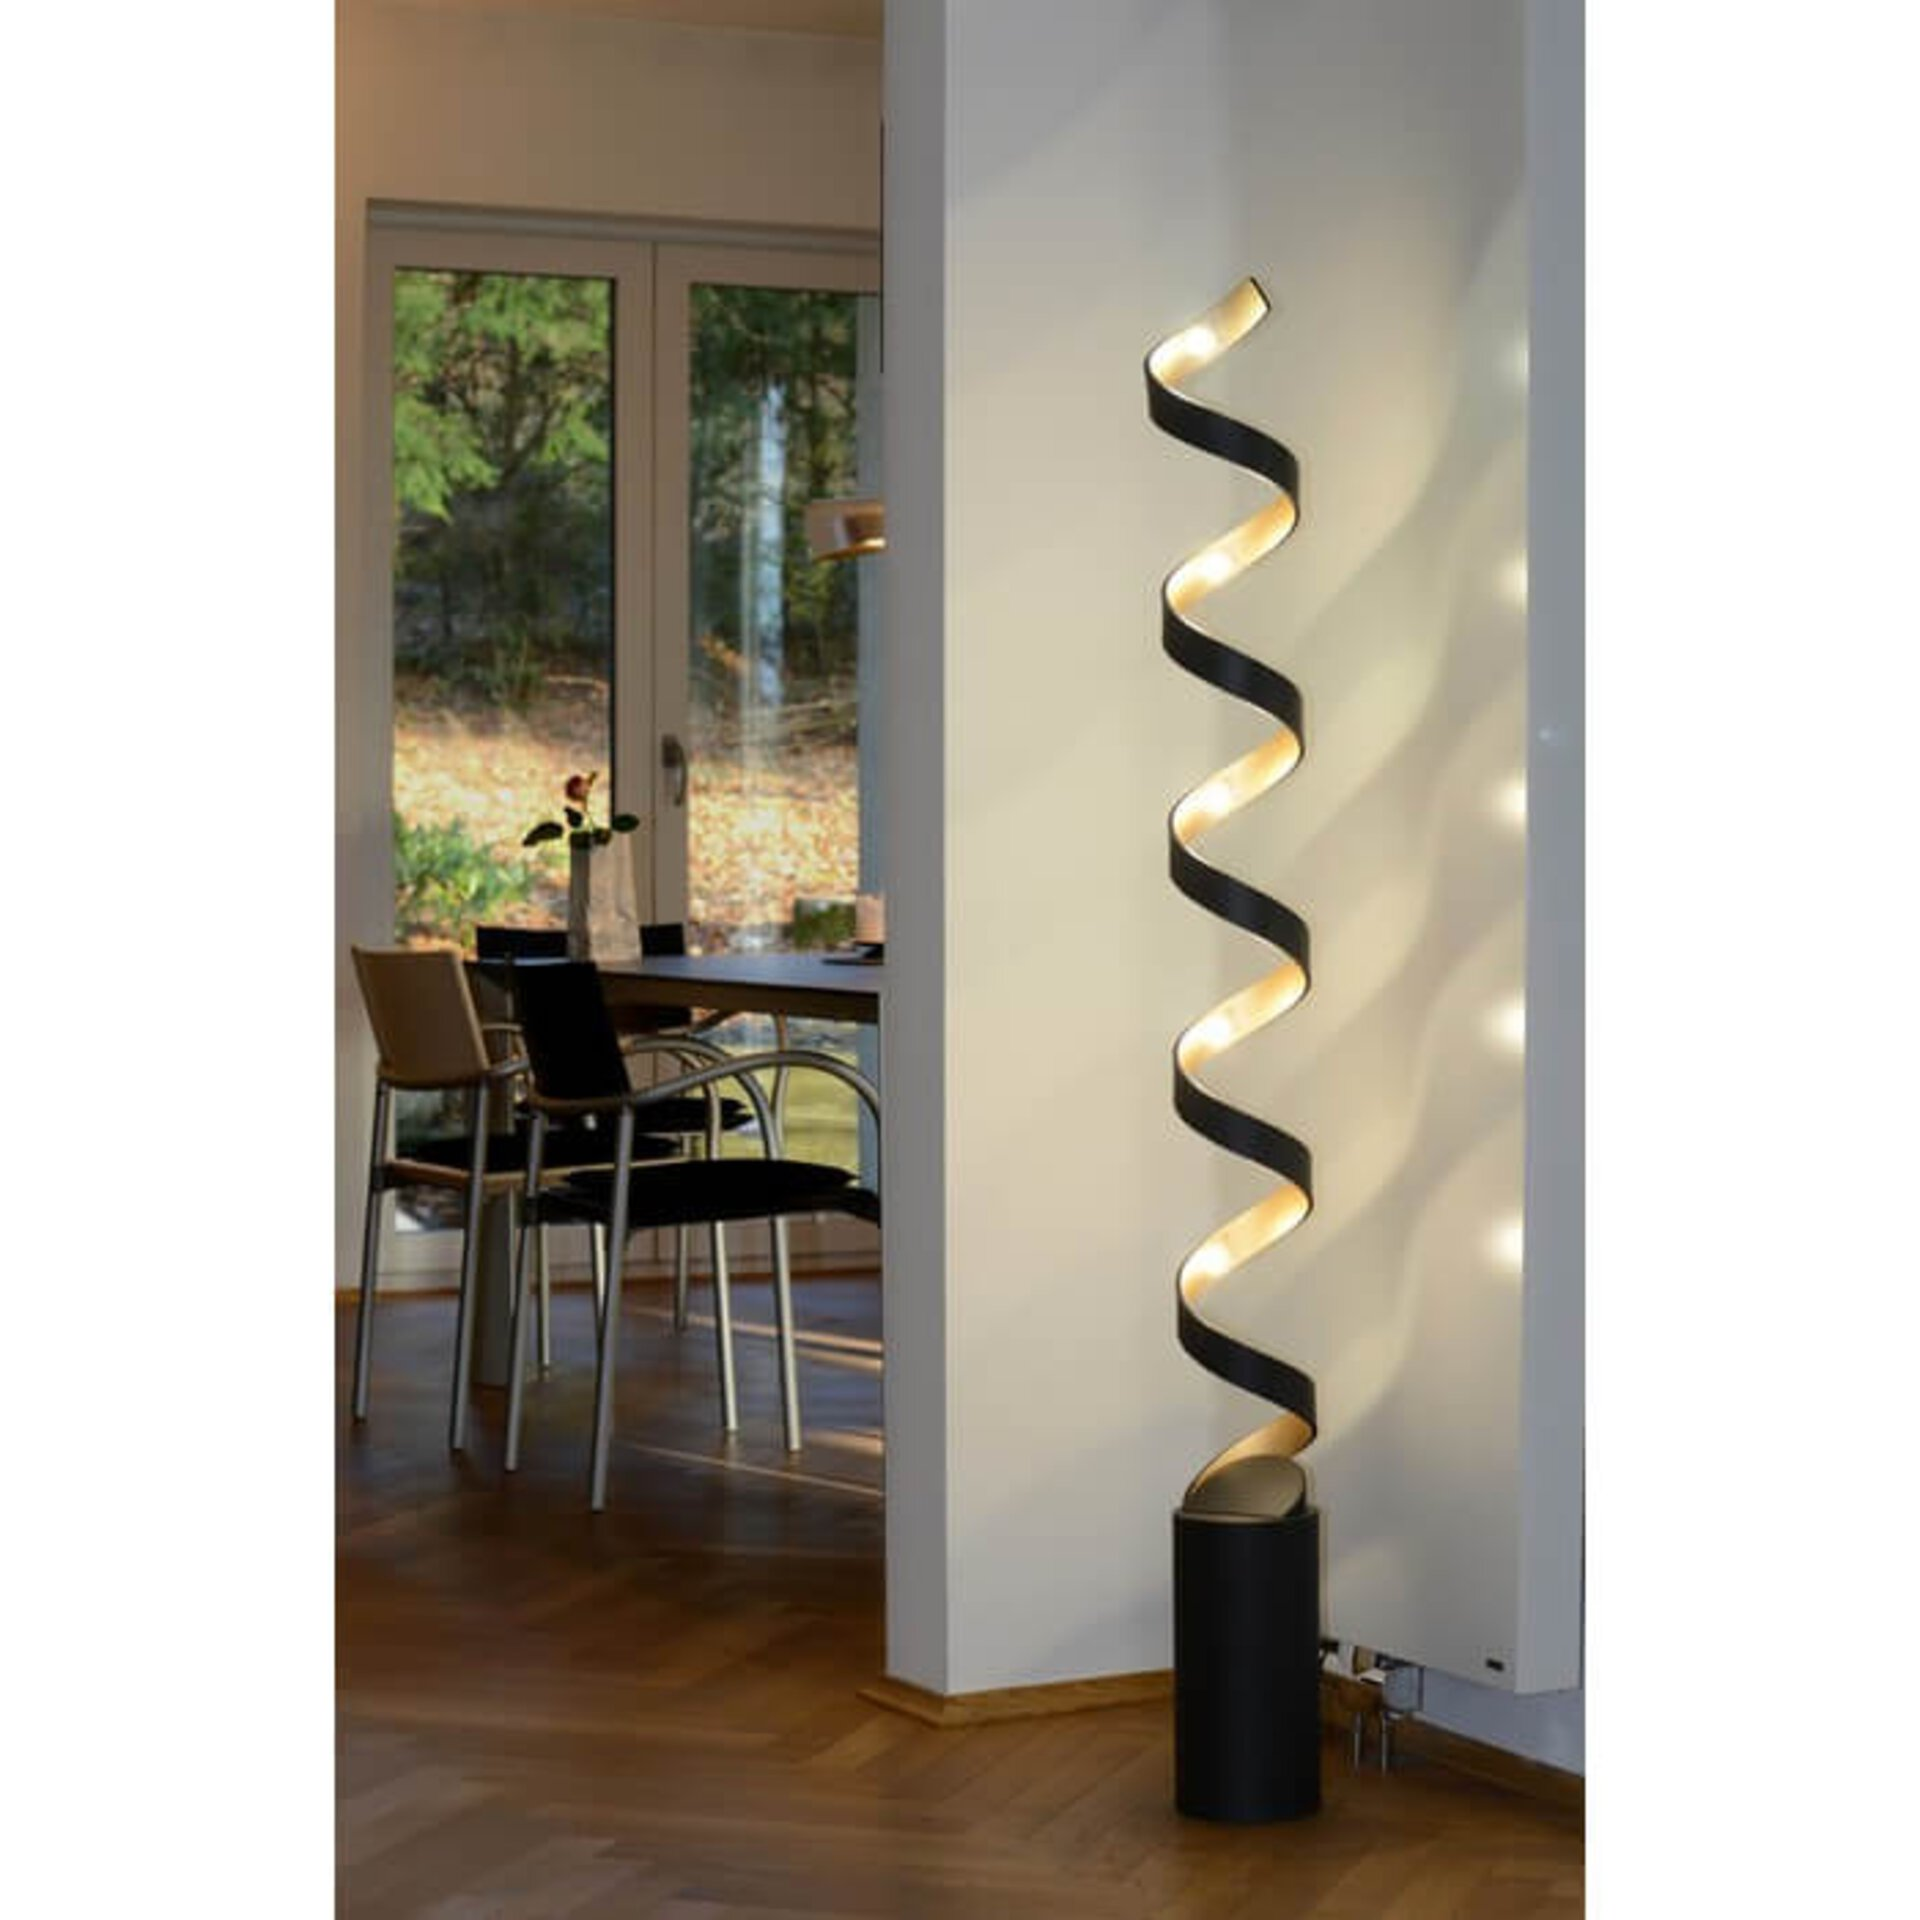 LED-Stehlampe Helix in Gold u. Metall